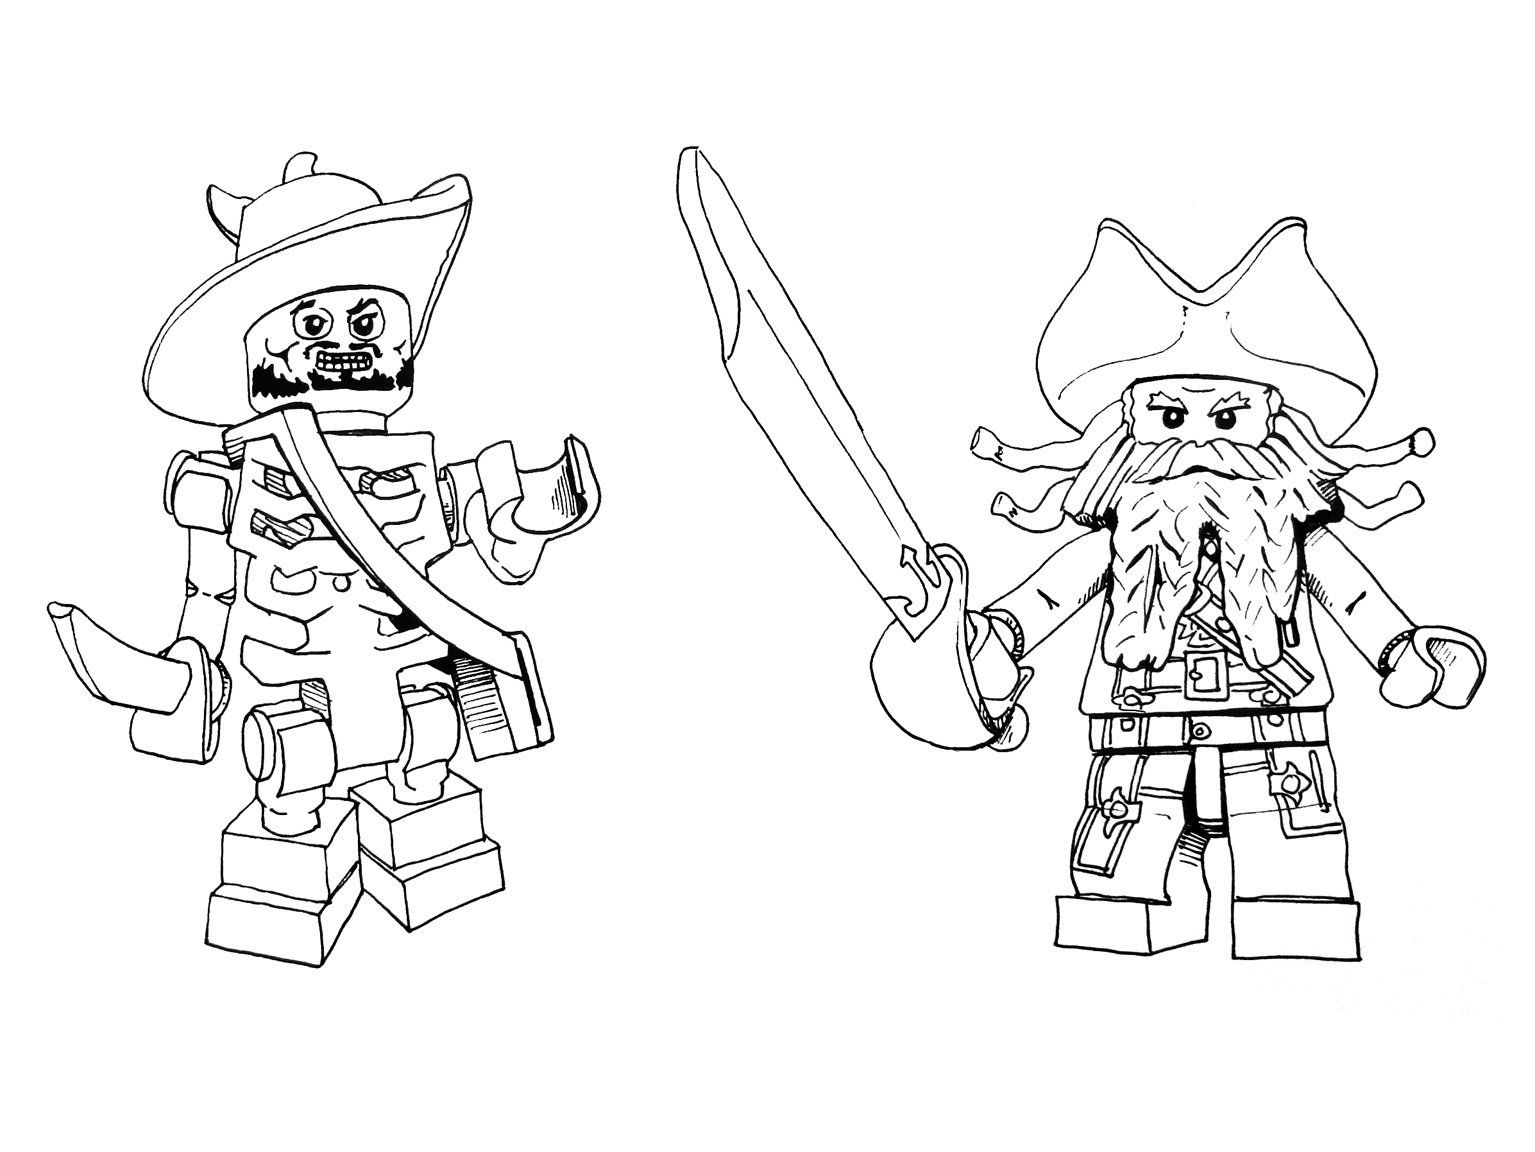 Lego Pirate Coloring Page